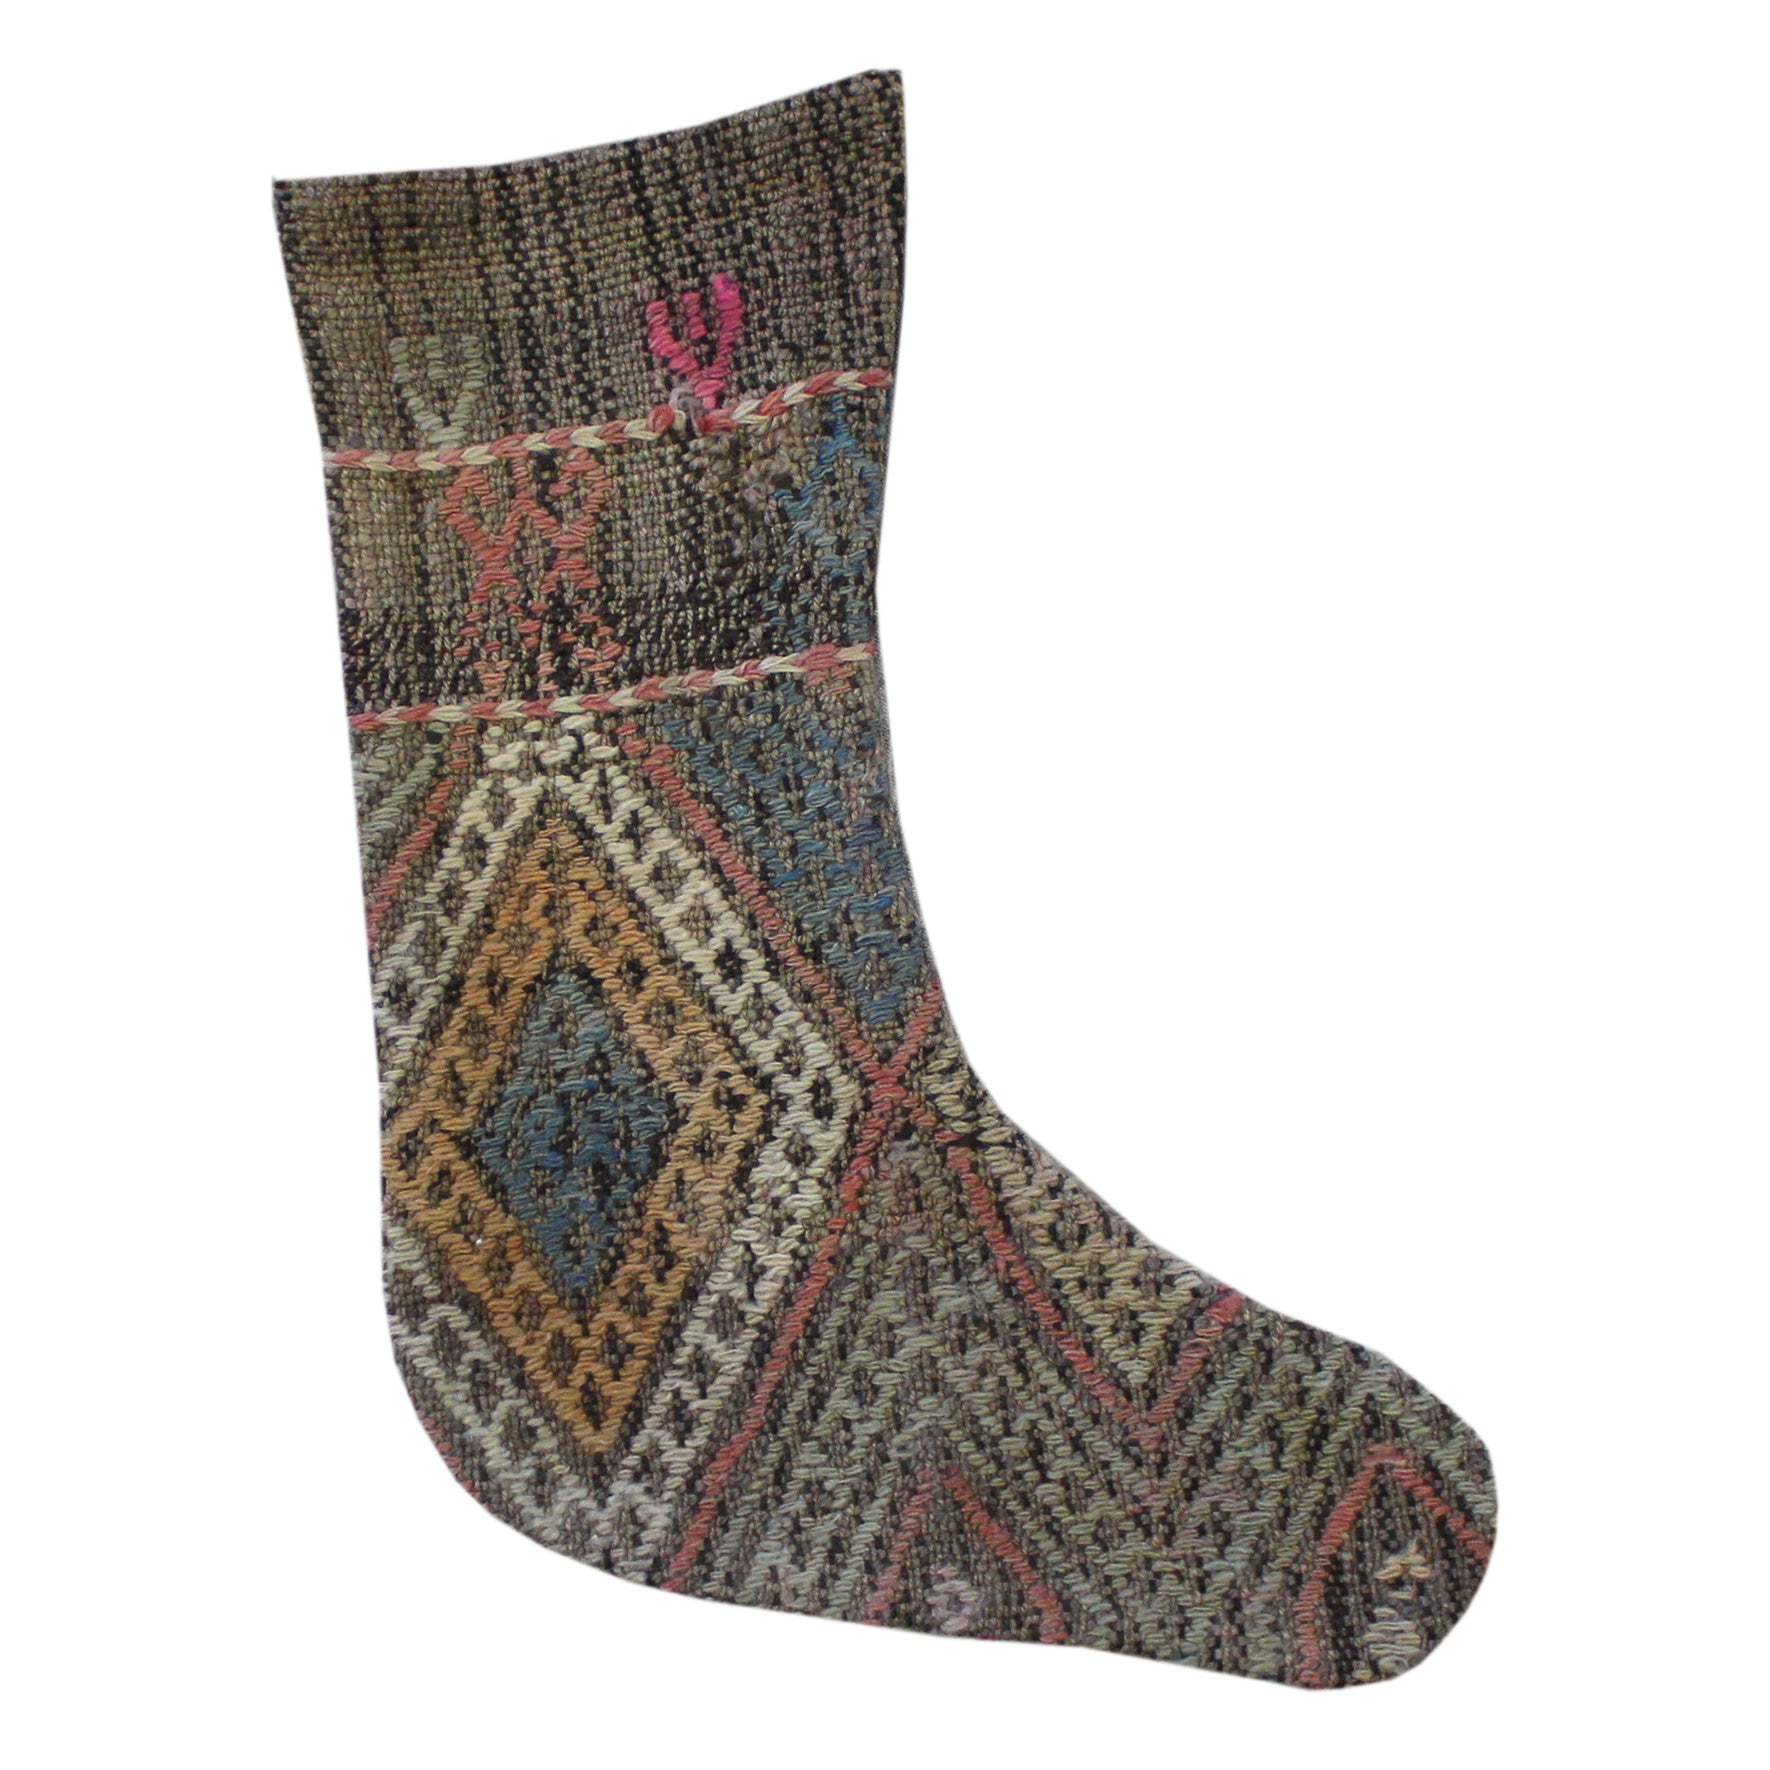 Vintage Kilim Decorative Stocking